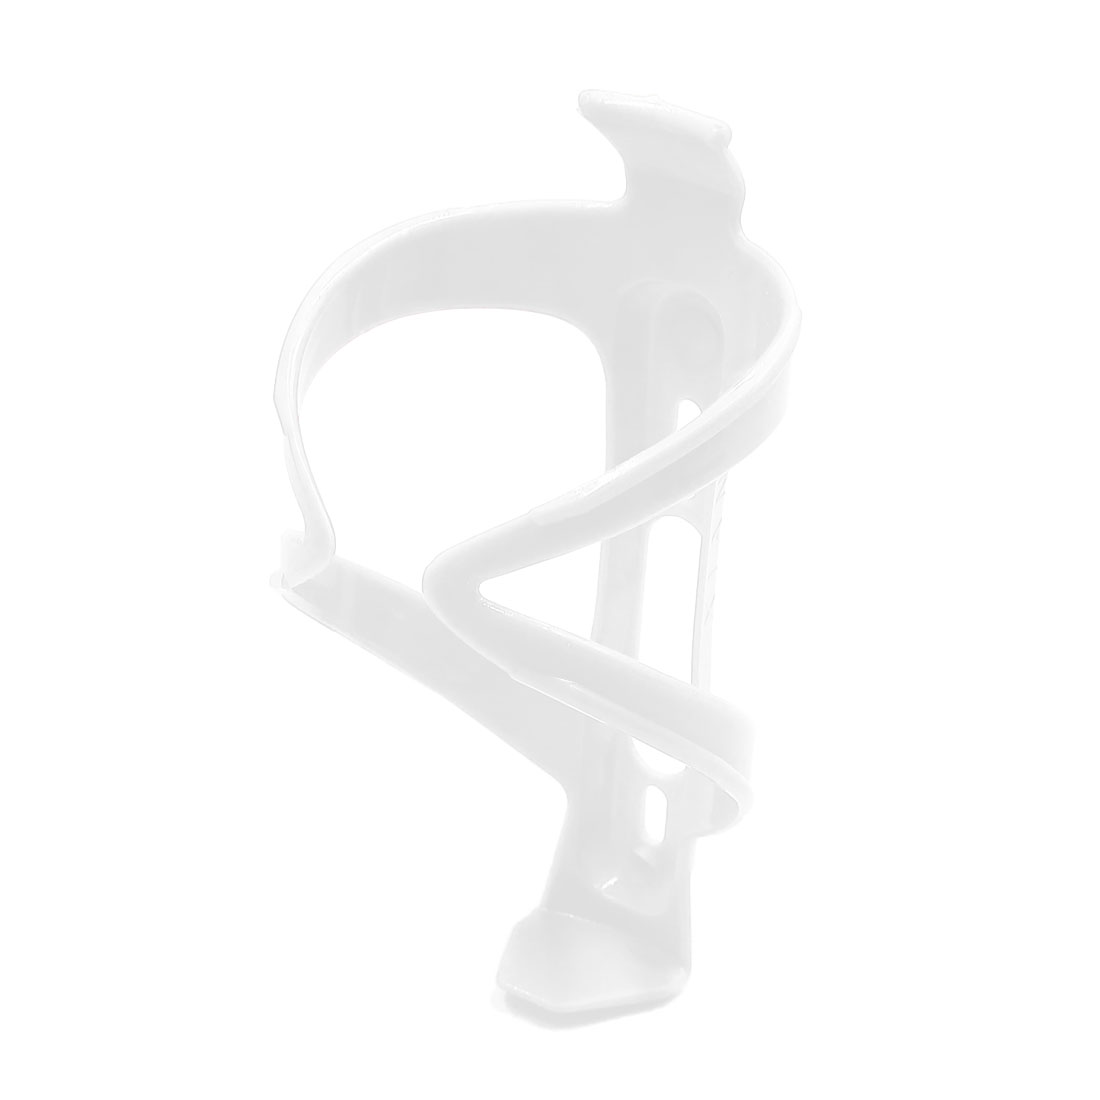 Plastic Bike Bicycle Cycling Outdoor Drink Water Bottle Cup Holder Bracket White